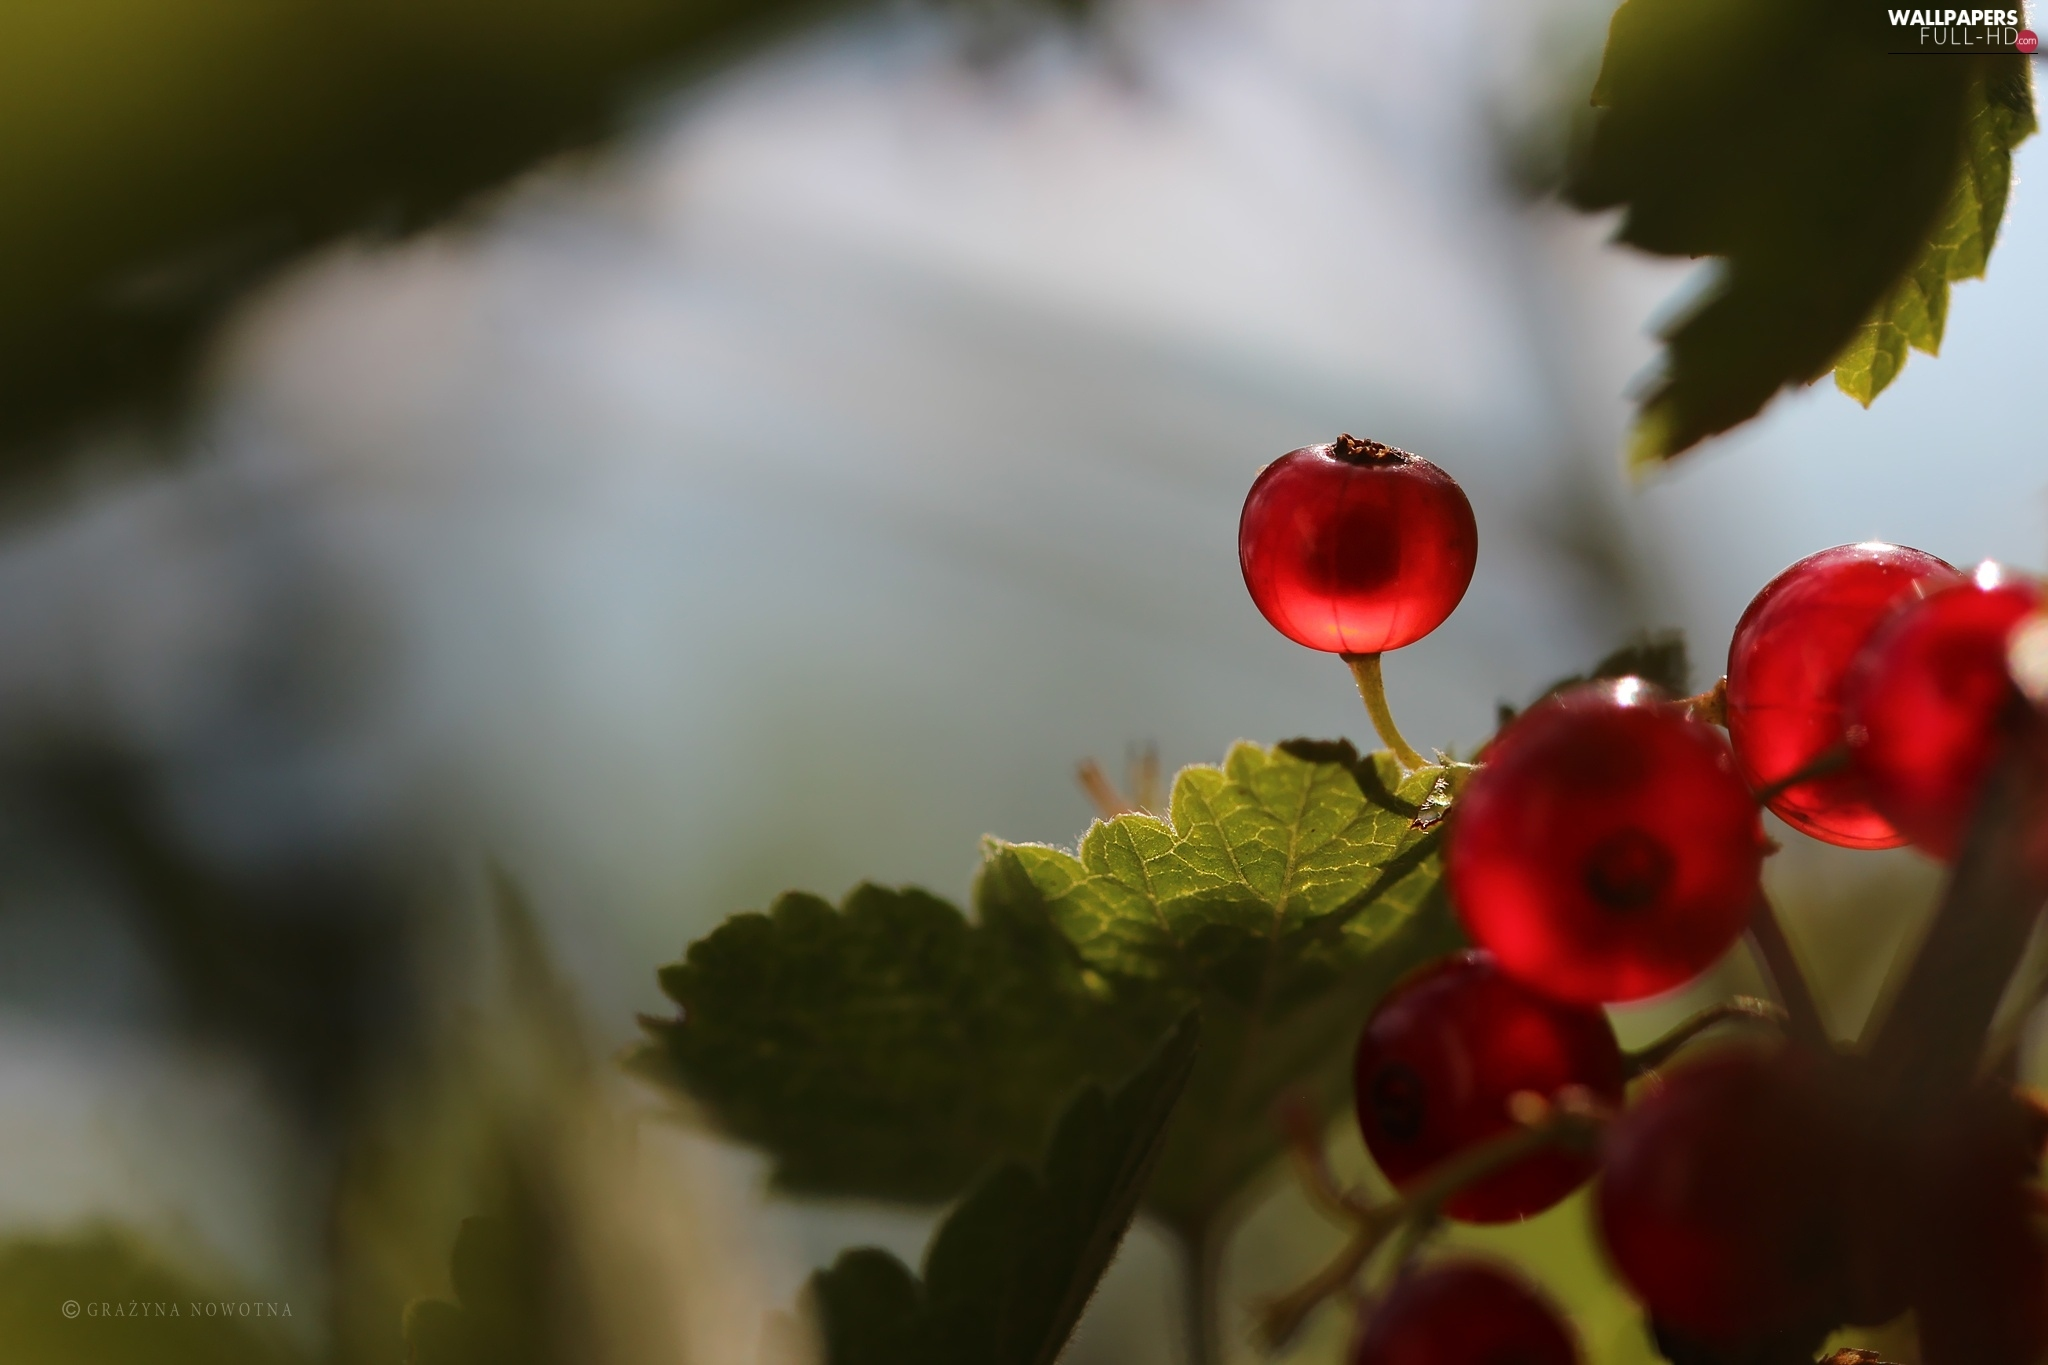 Fruits, The beads, Red Currants